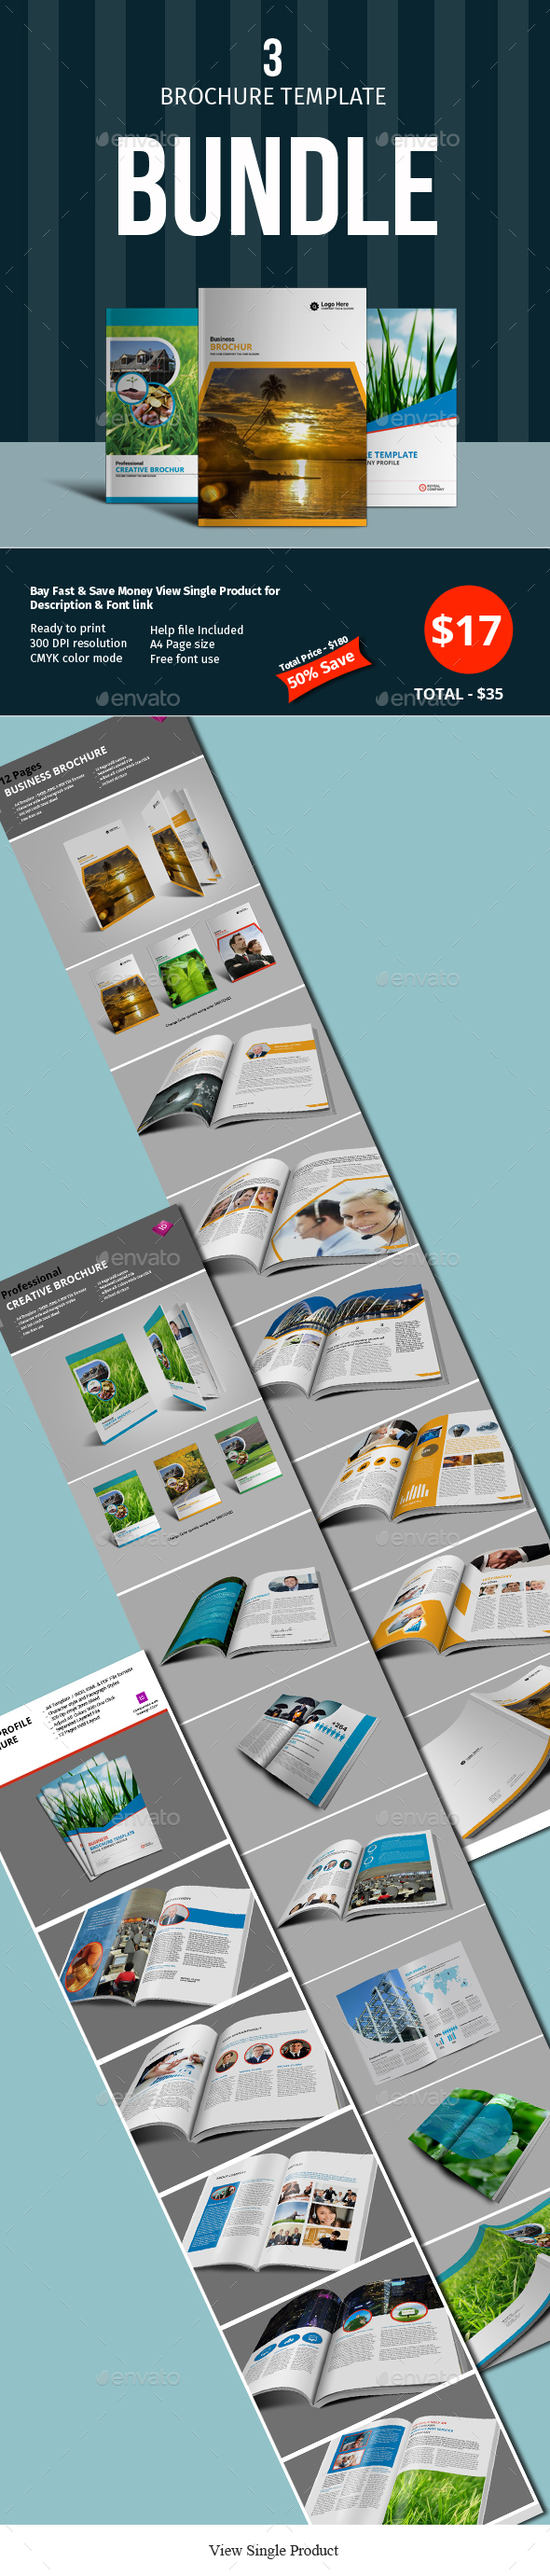 12 Pages 3 Brochure Template Bundle - Corporate Brochures